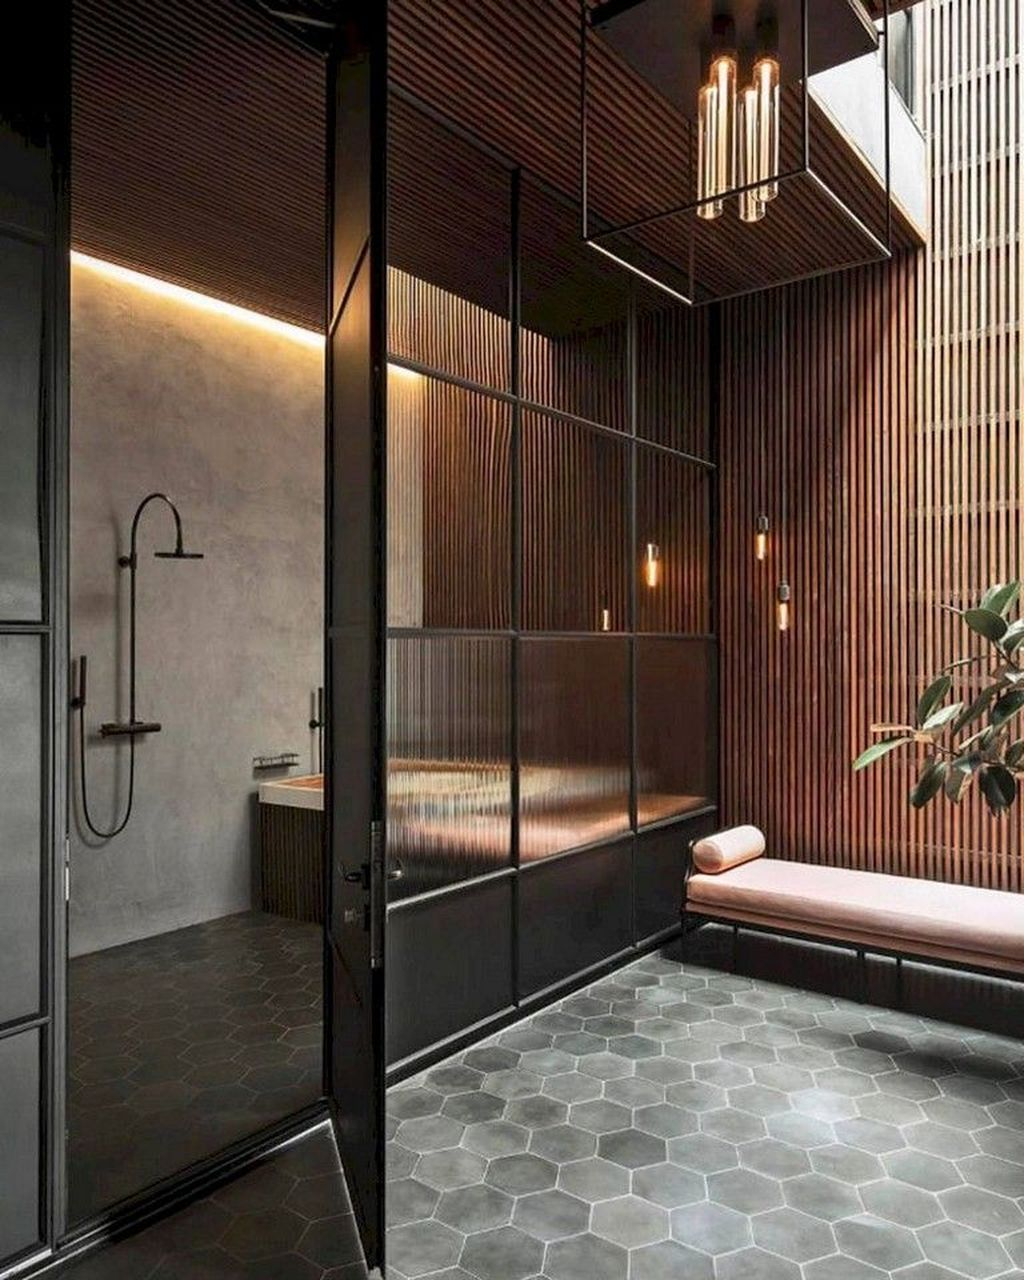 Stunning Industrial Bathroom Design Ideas 32